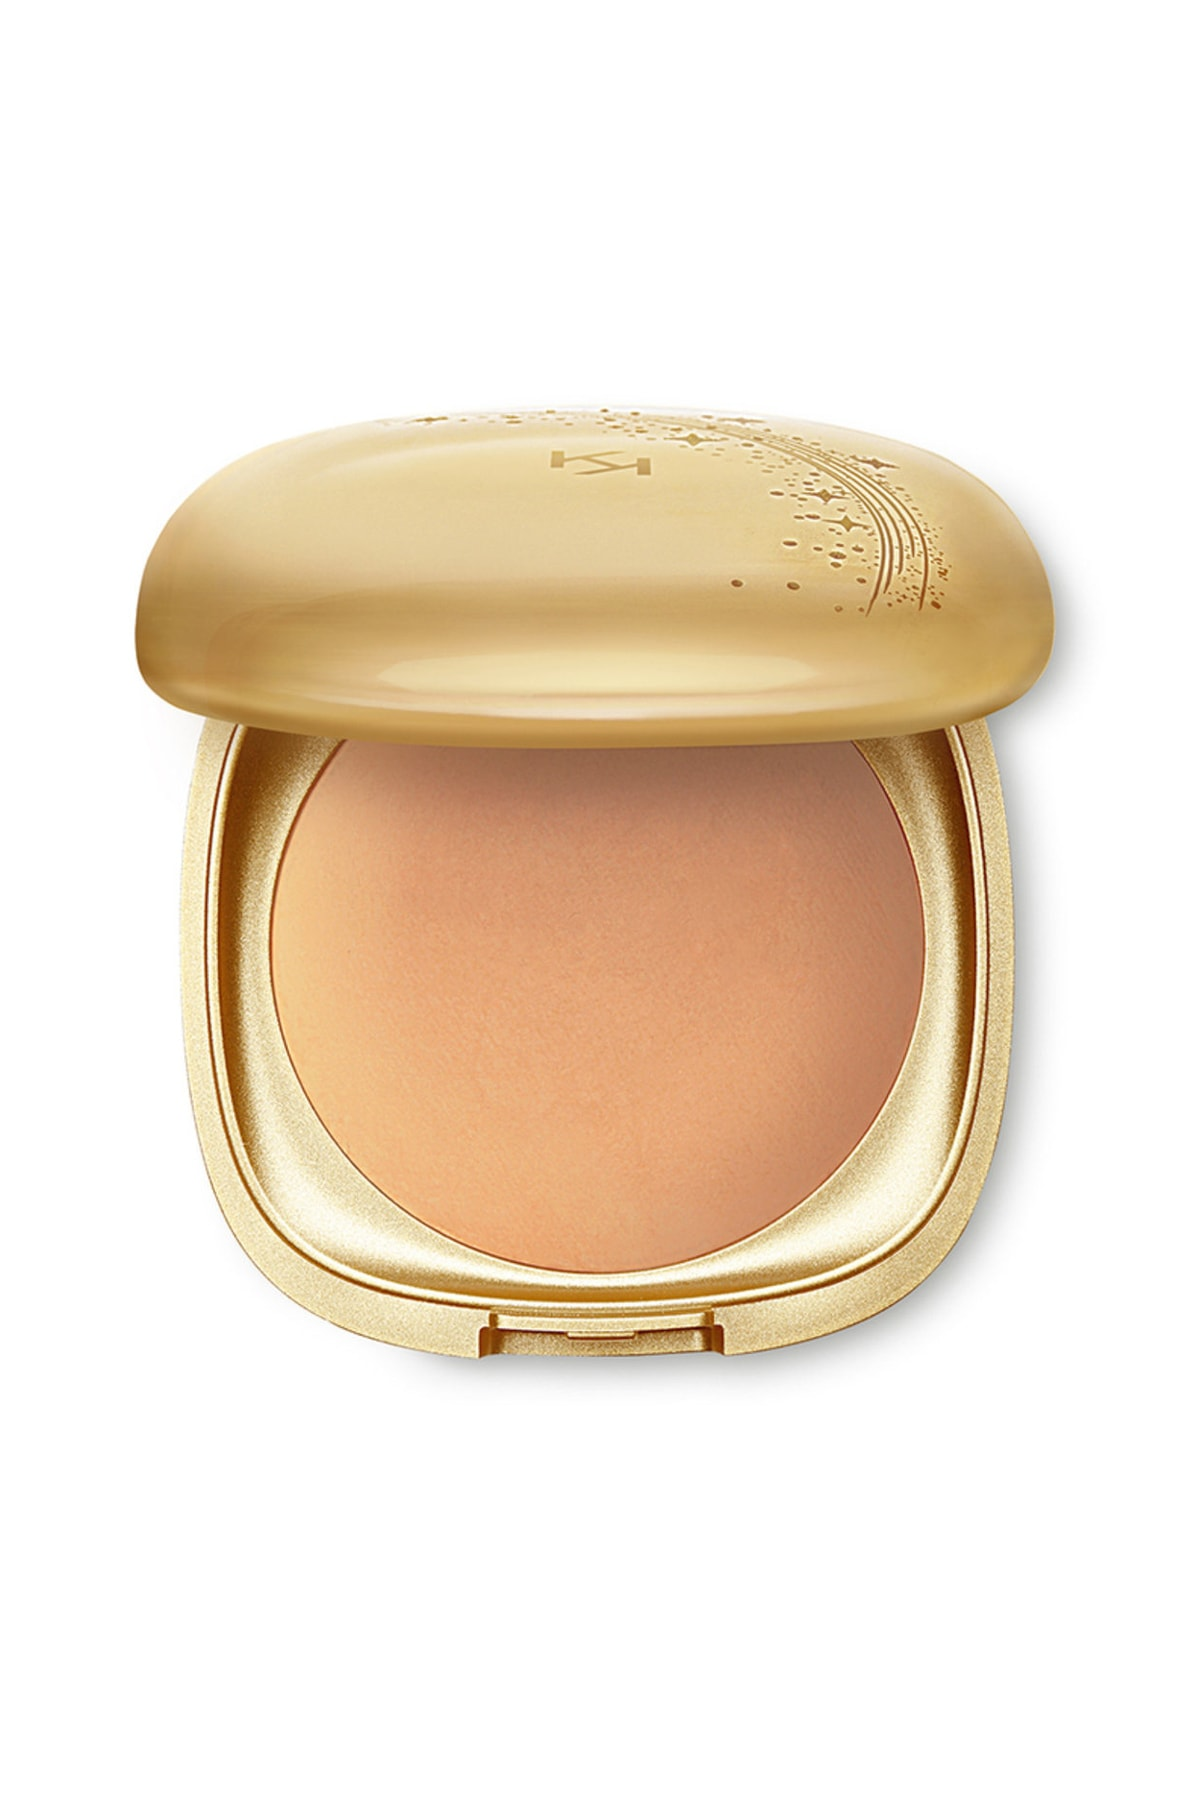 Pudra - Magical Holiday Matte Baked Powder 03 Honey 8025272833172